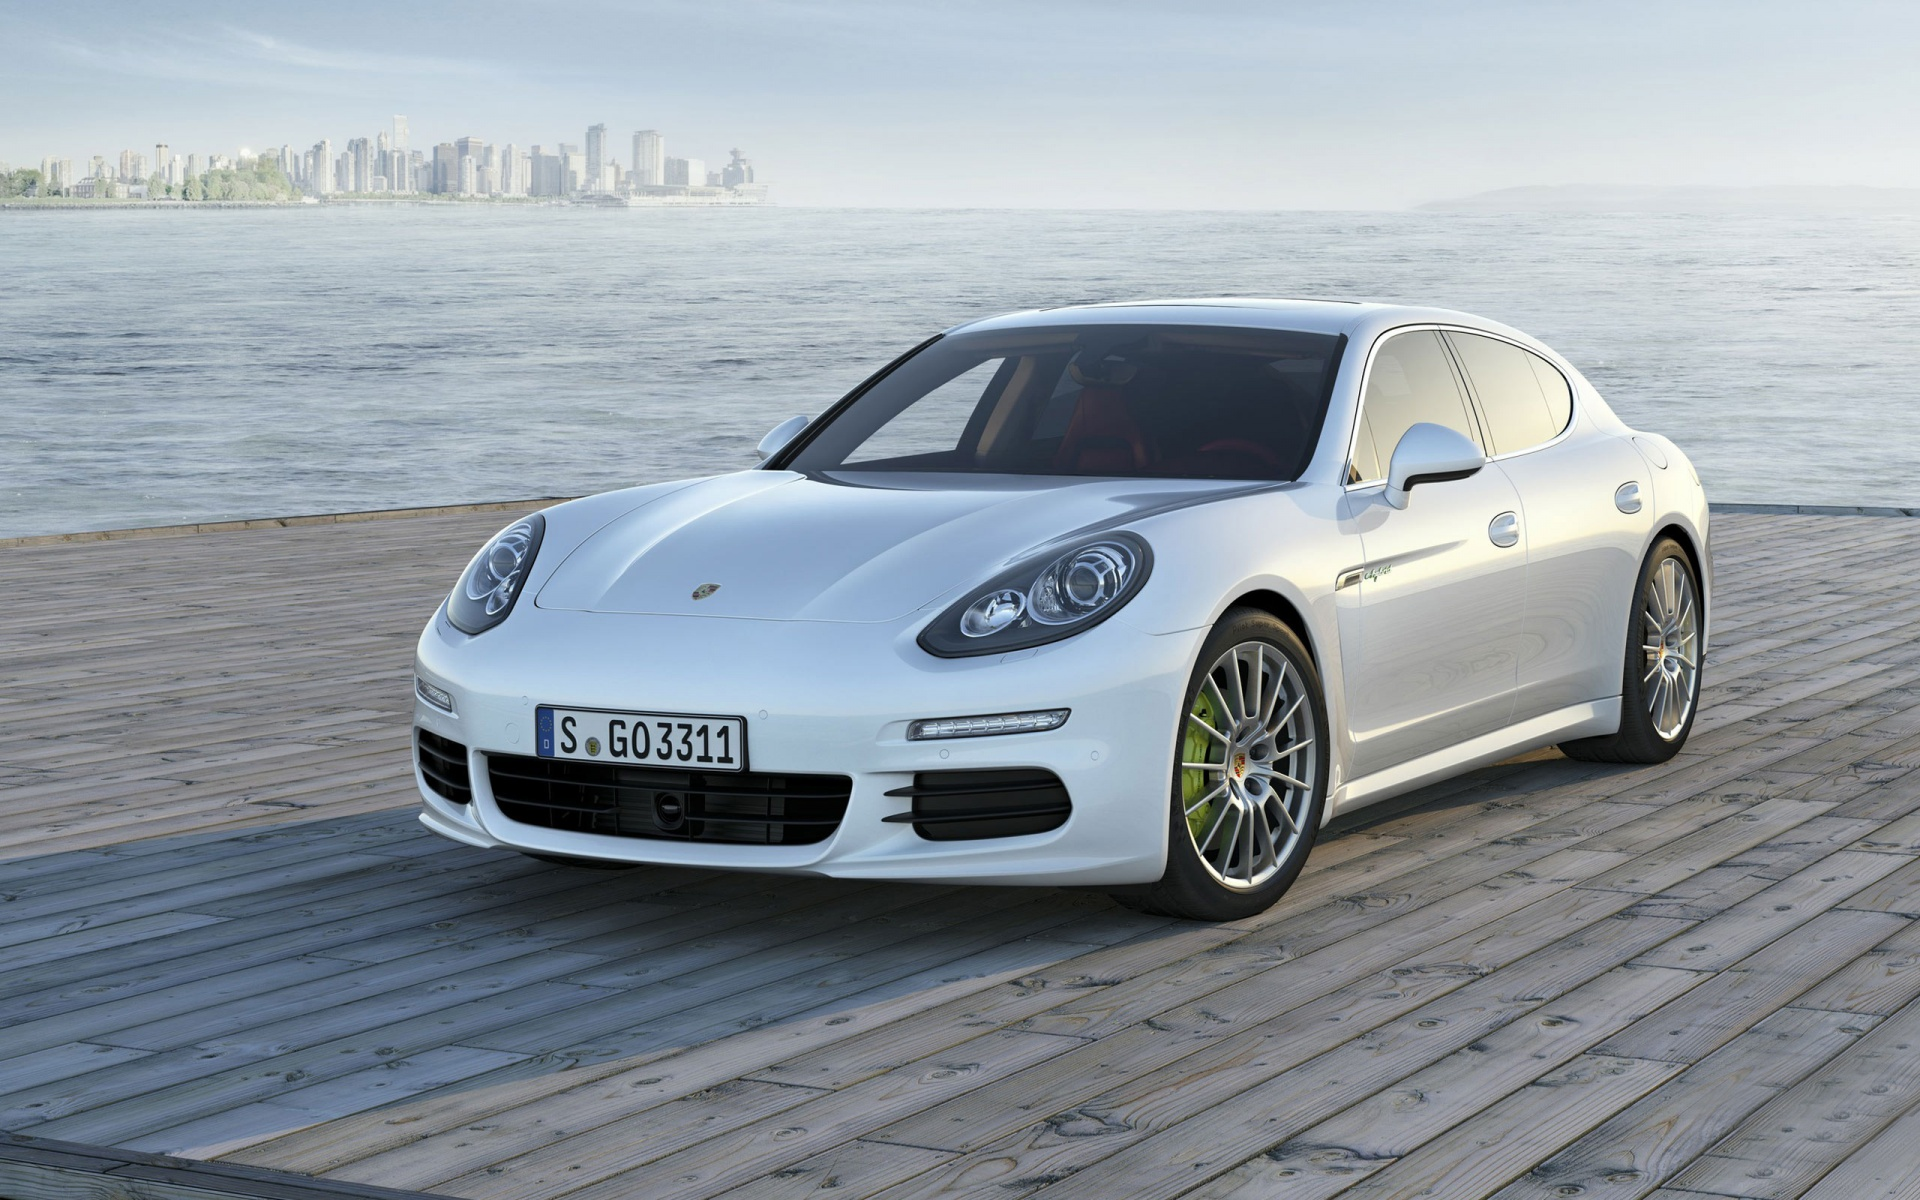 2014 Porsche Panamera Wallpaper HD Car Wallpapers 1920x1200